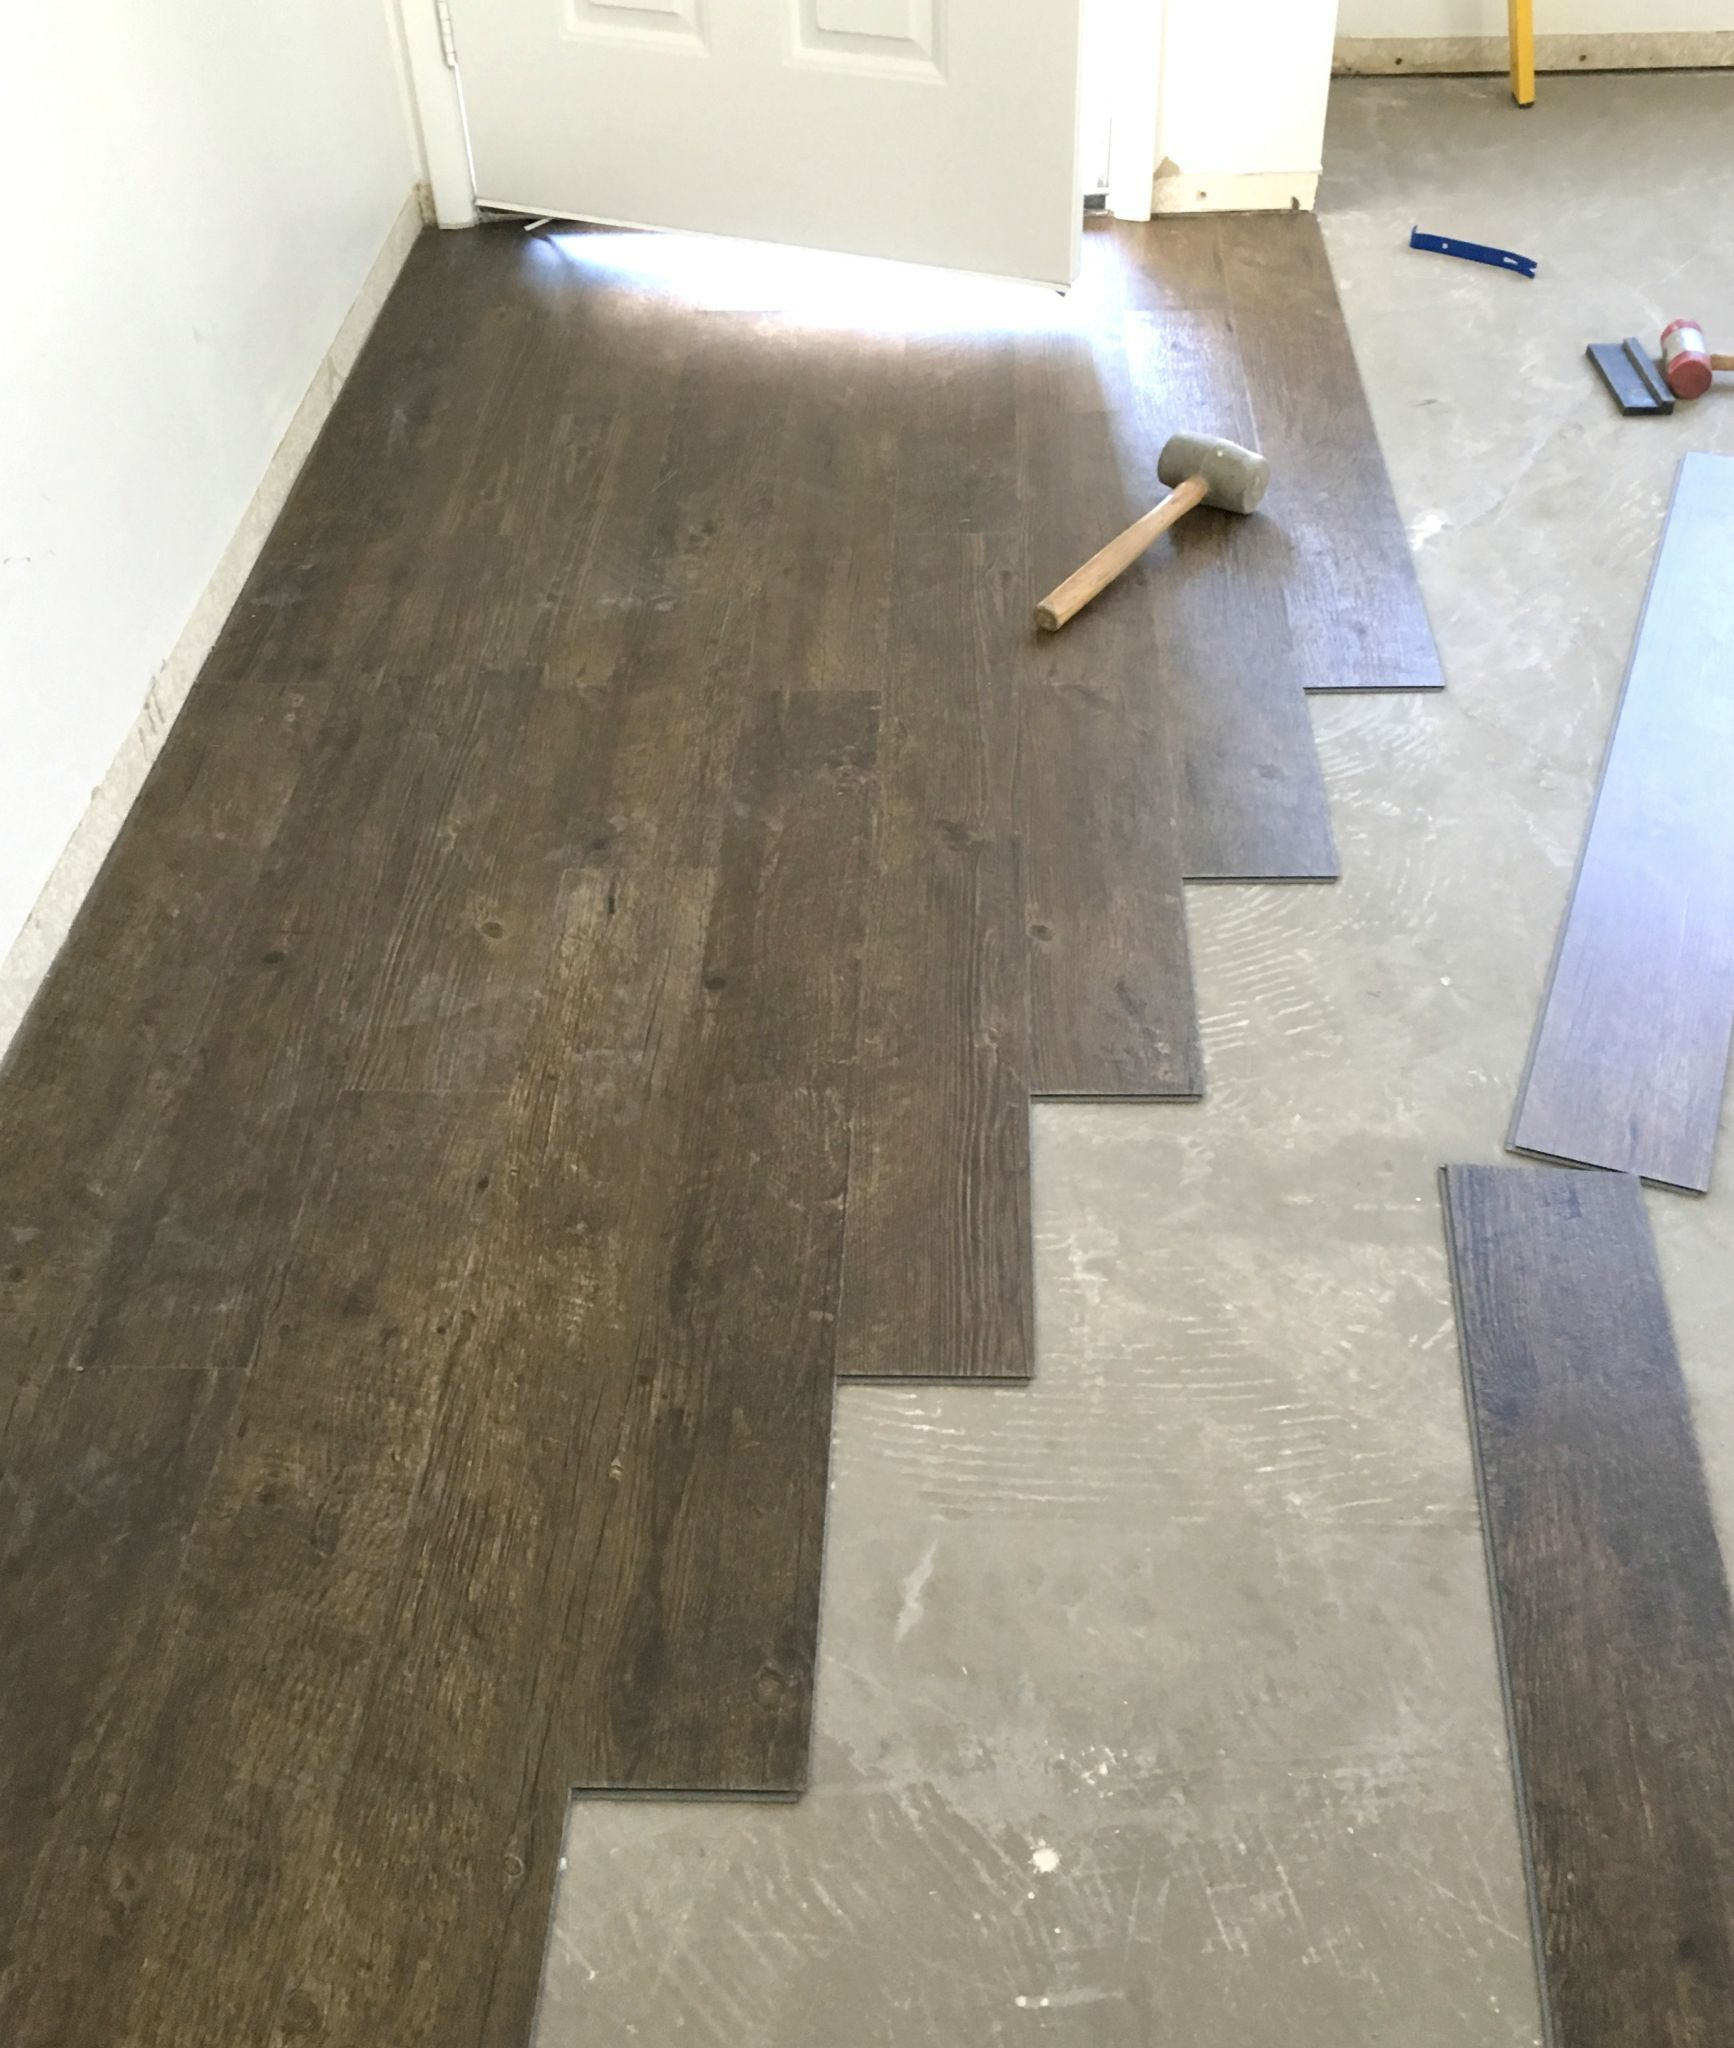 Vinyl plank flooring prep and installation build it with stan pinterest plank basements How to install laminate flooring in a bathroom